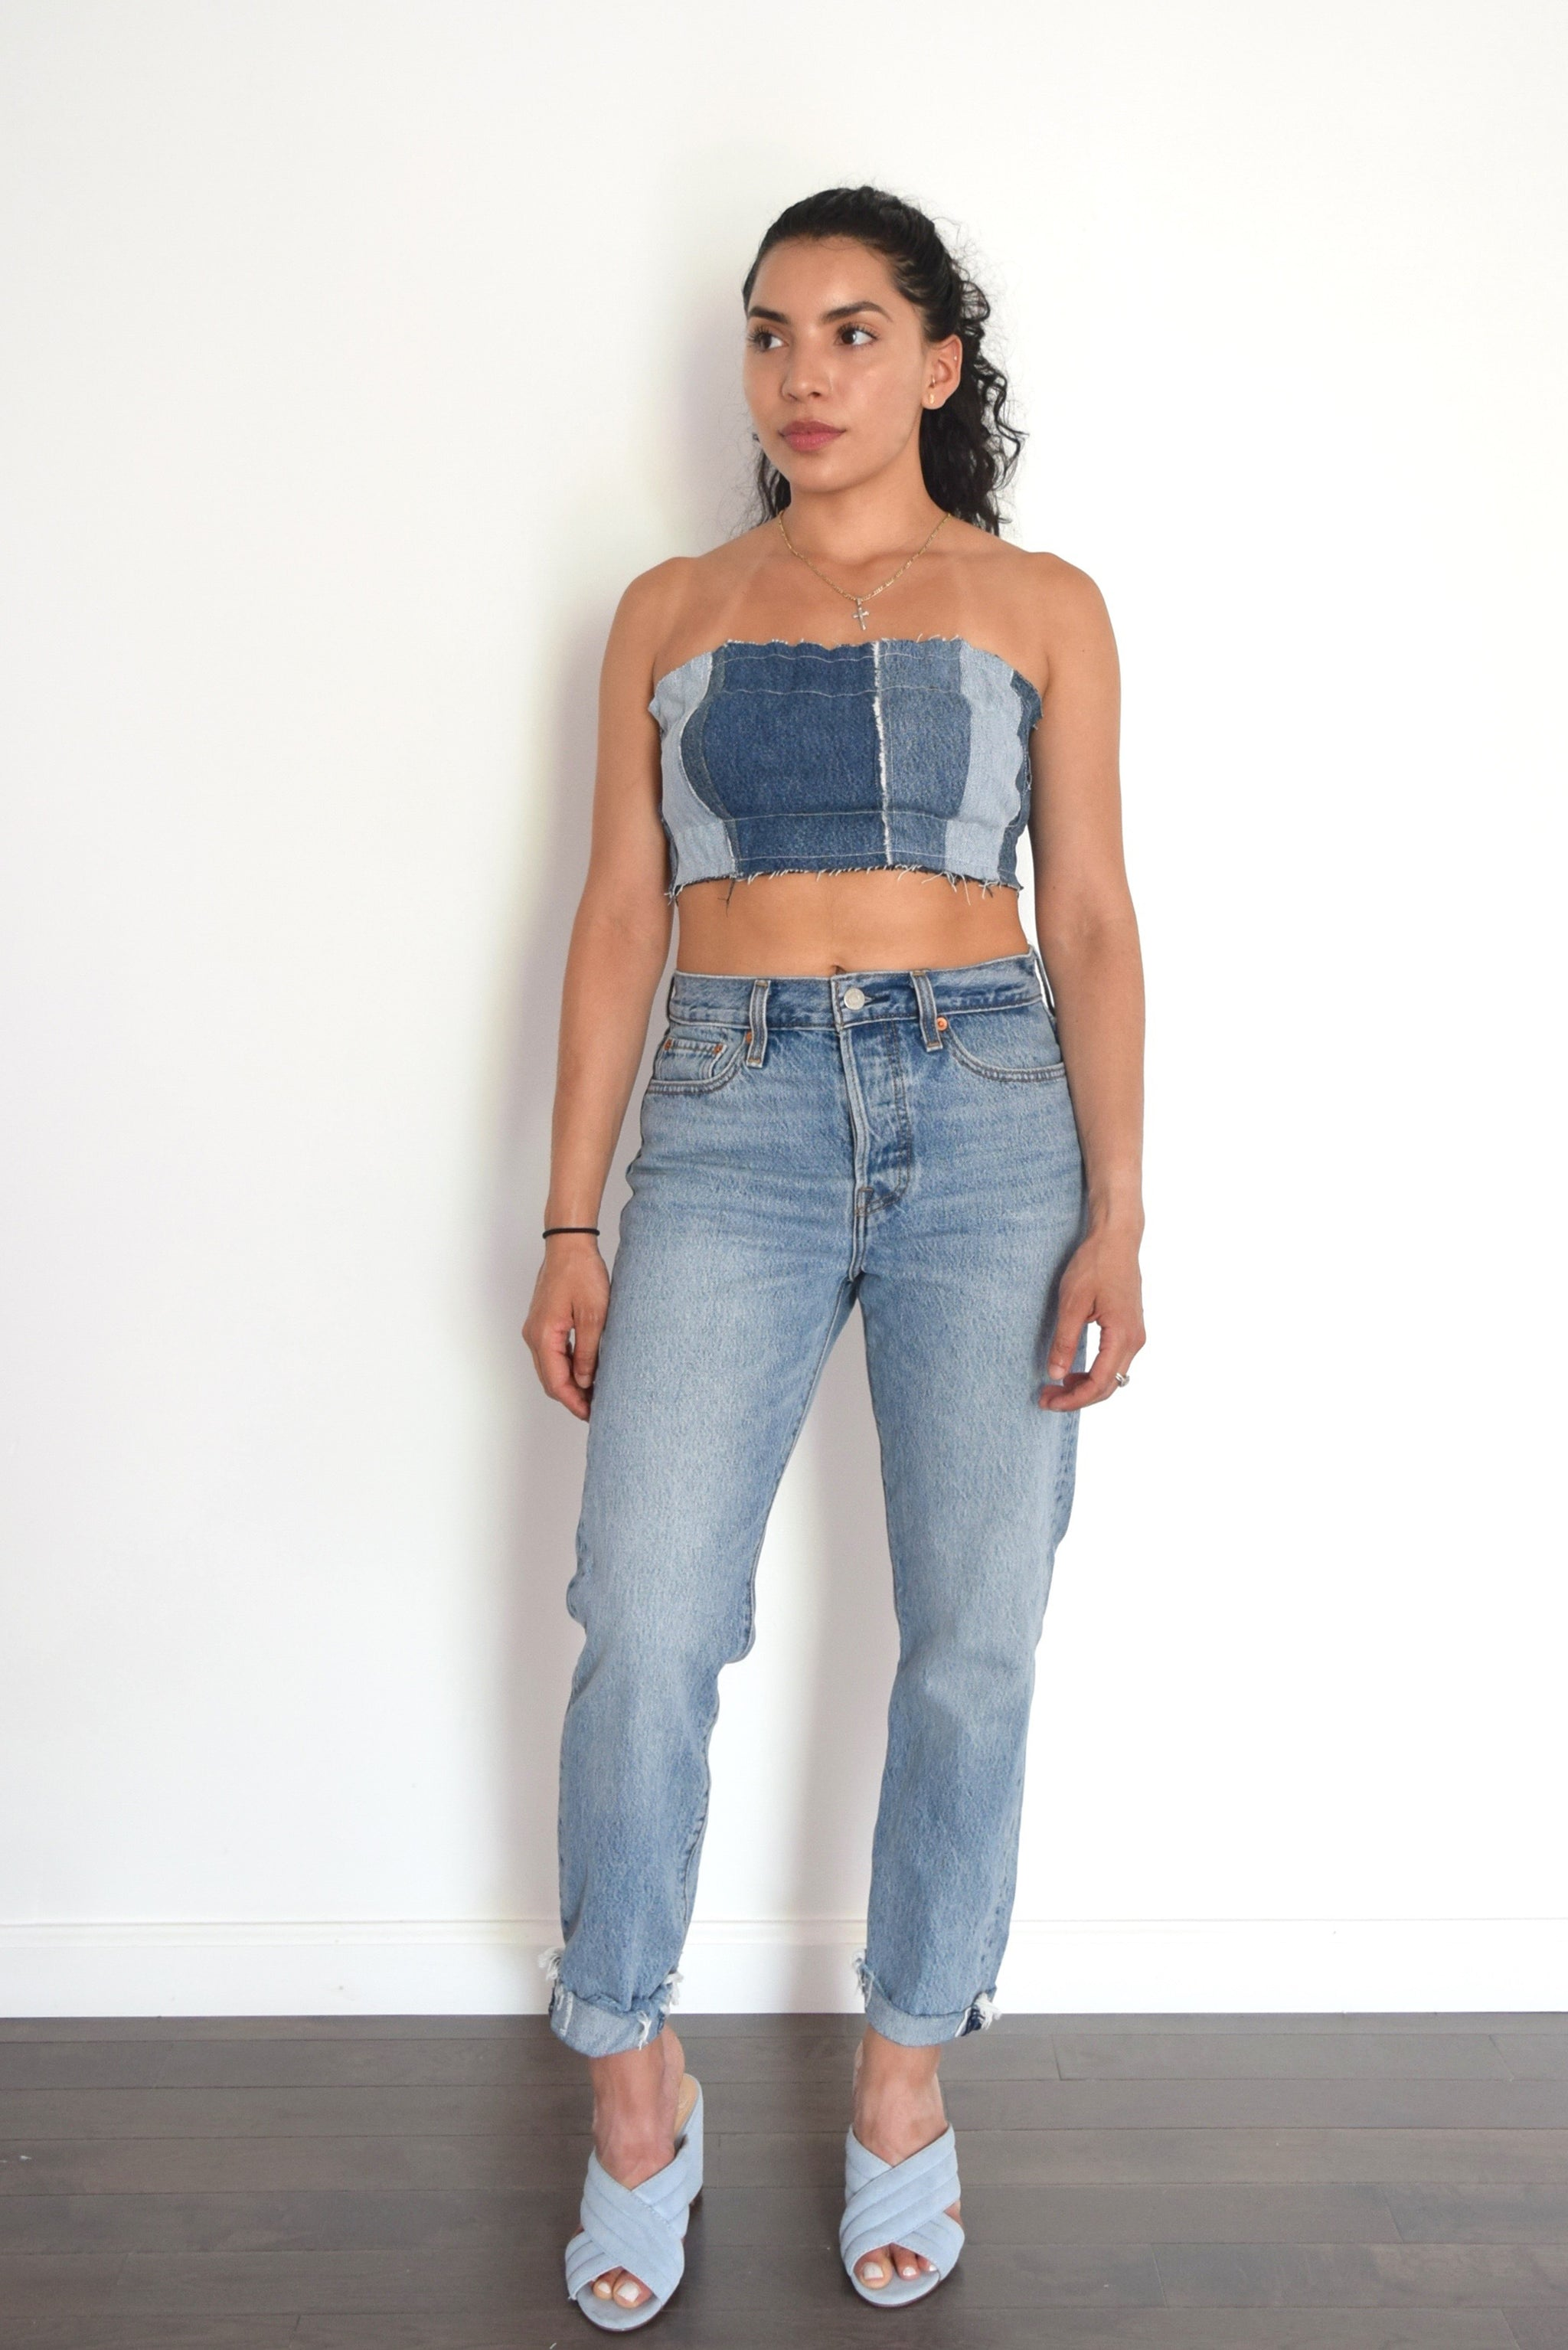 Denim bandeau, reworked denim , patchwork denim